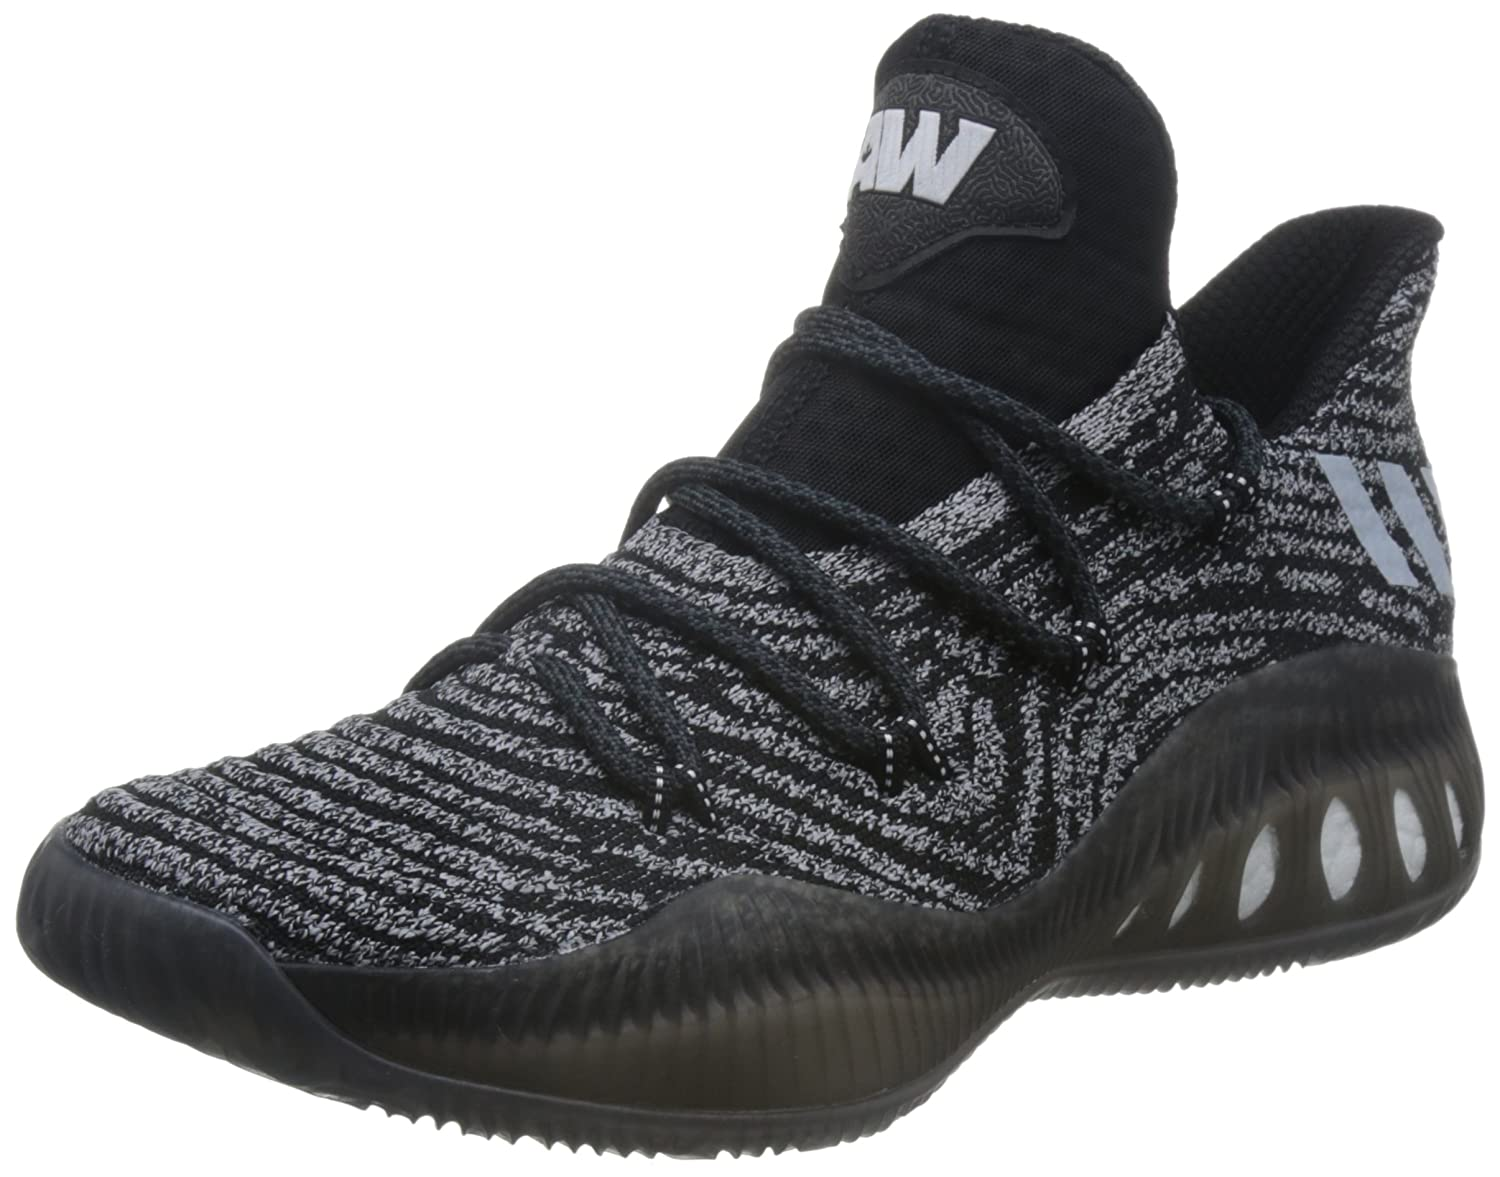 Adidas Performance Crazy Explosive Low Pk BB8346, Turnschuhe